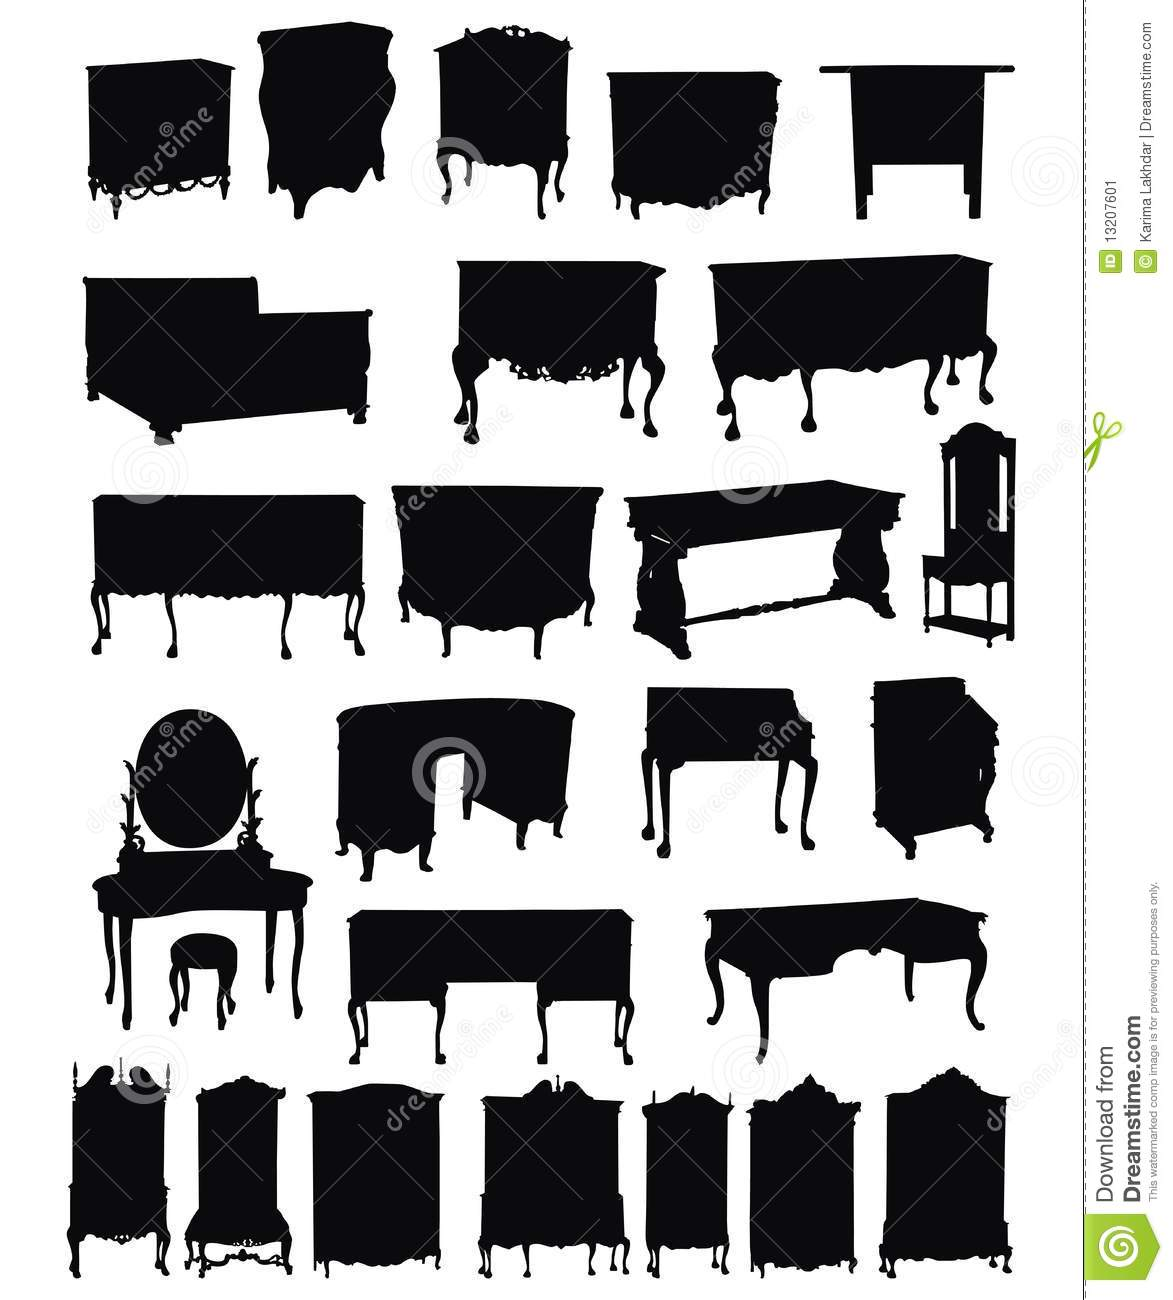 Antique chair silhouette - Antique Furniture Silhouettes